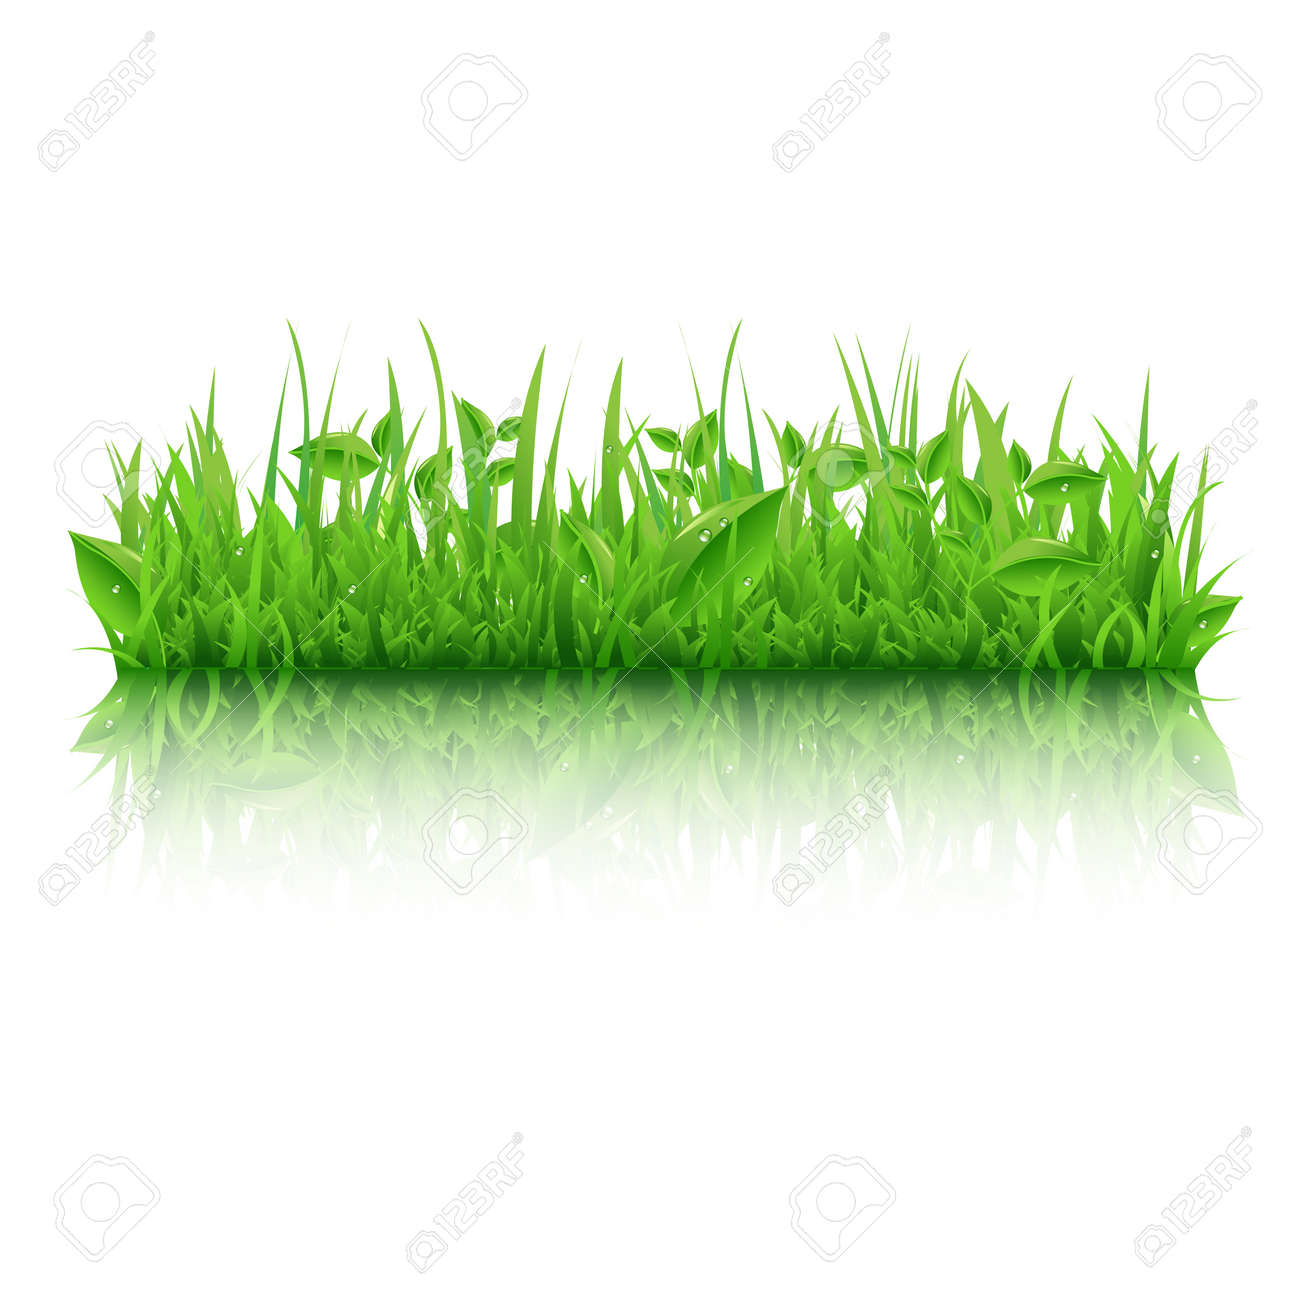 Green Grass With Leafs - 165528073